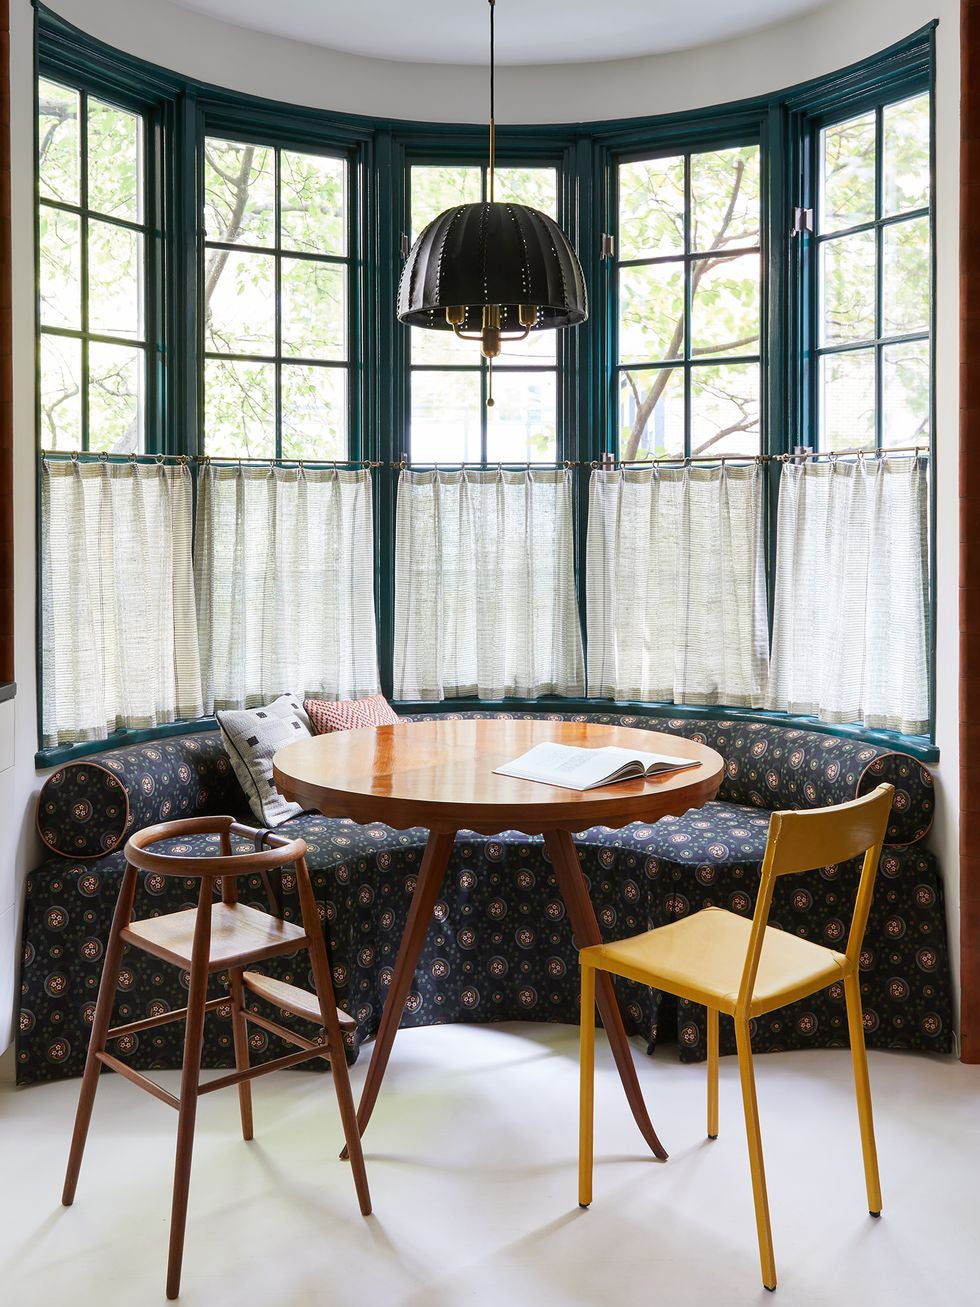 Kitchen breakfast nook with curve banquette